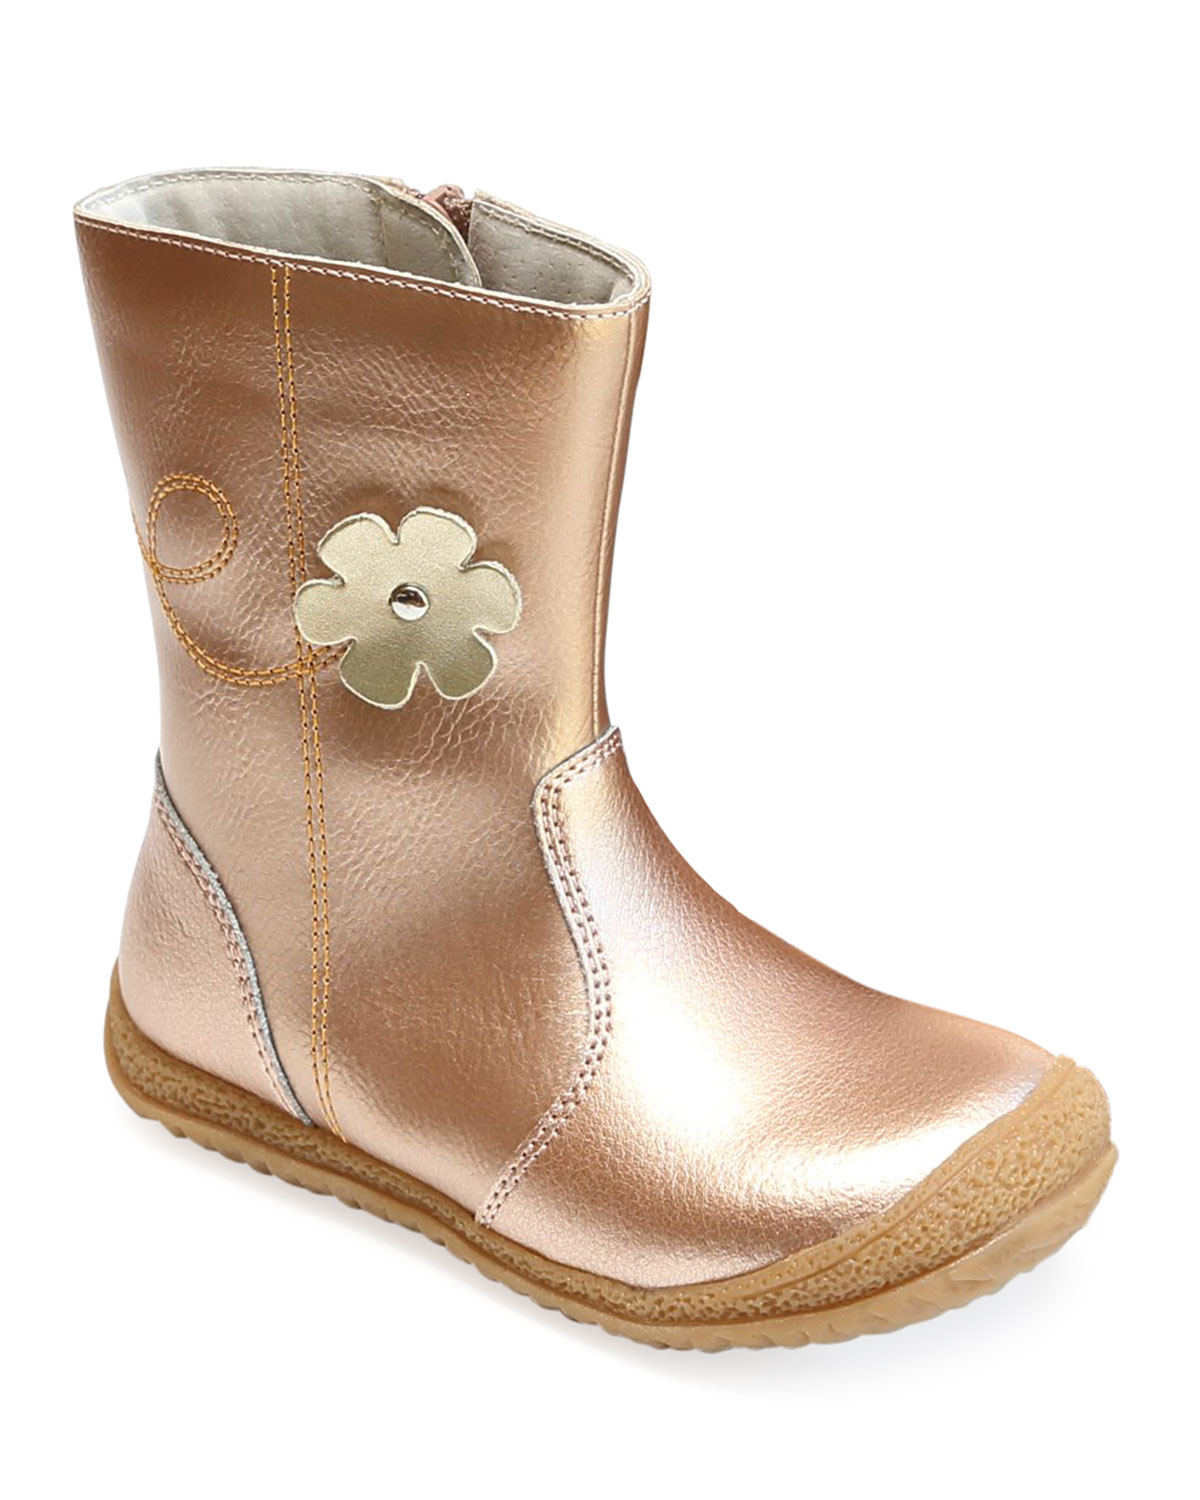 Madison Metallic Leather Flower Mid-Top Boot, Baby/Toddler/Kids